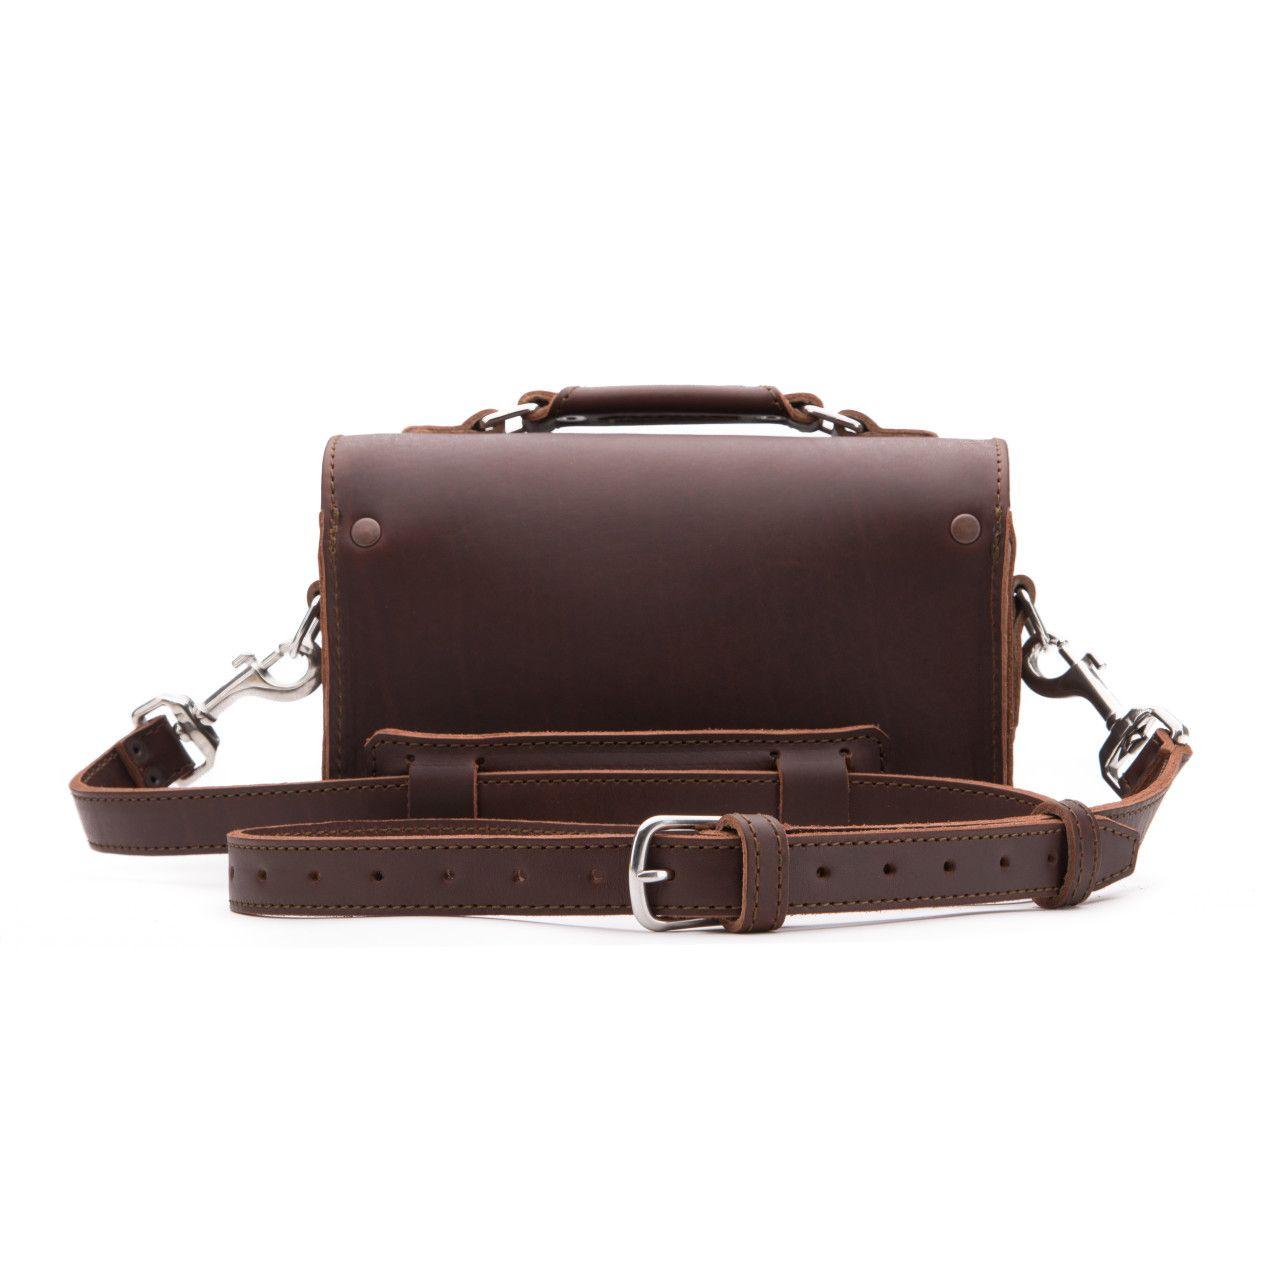 leather travel case medium in chestnut leather